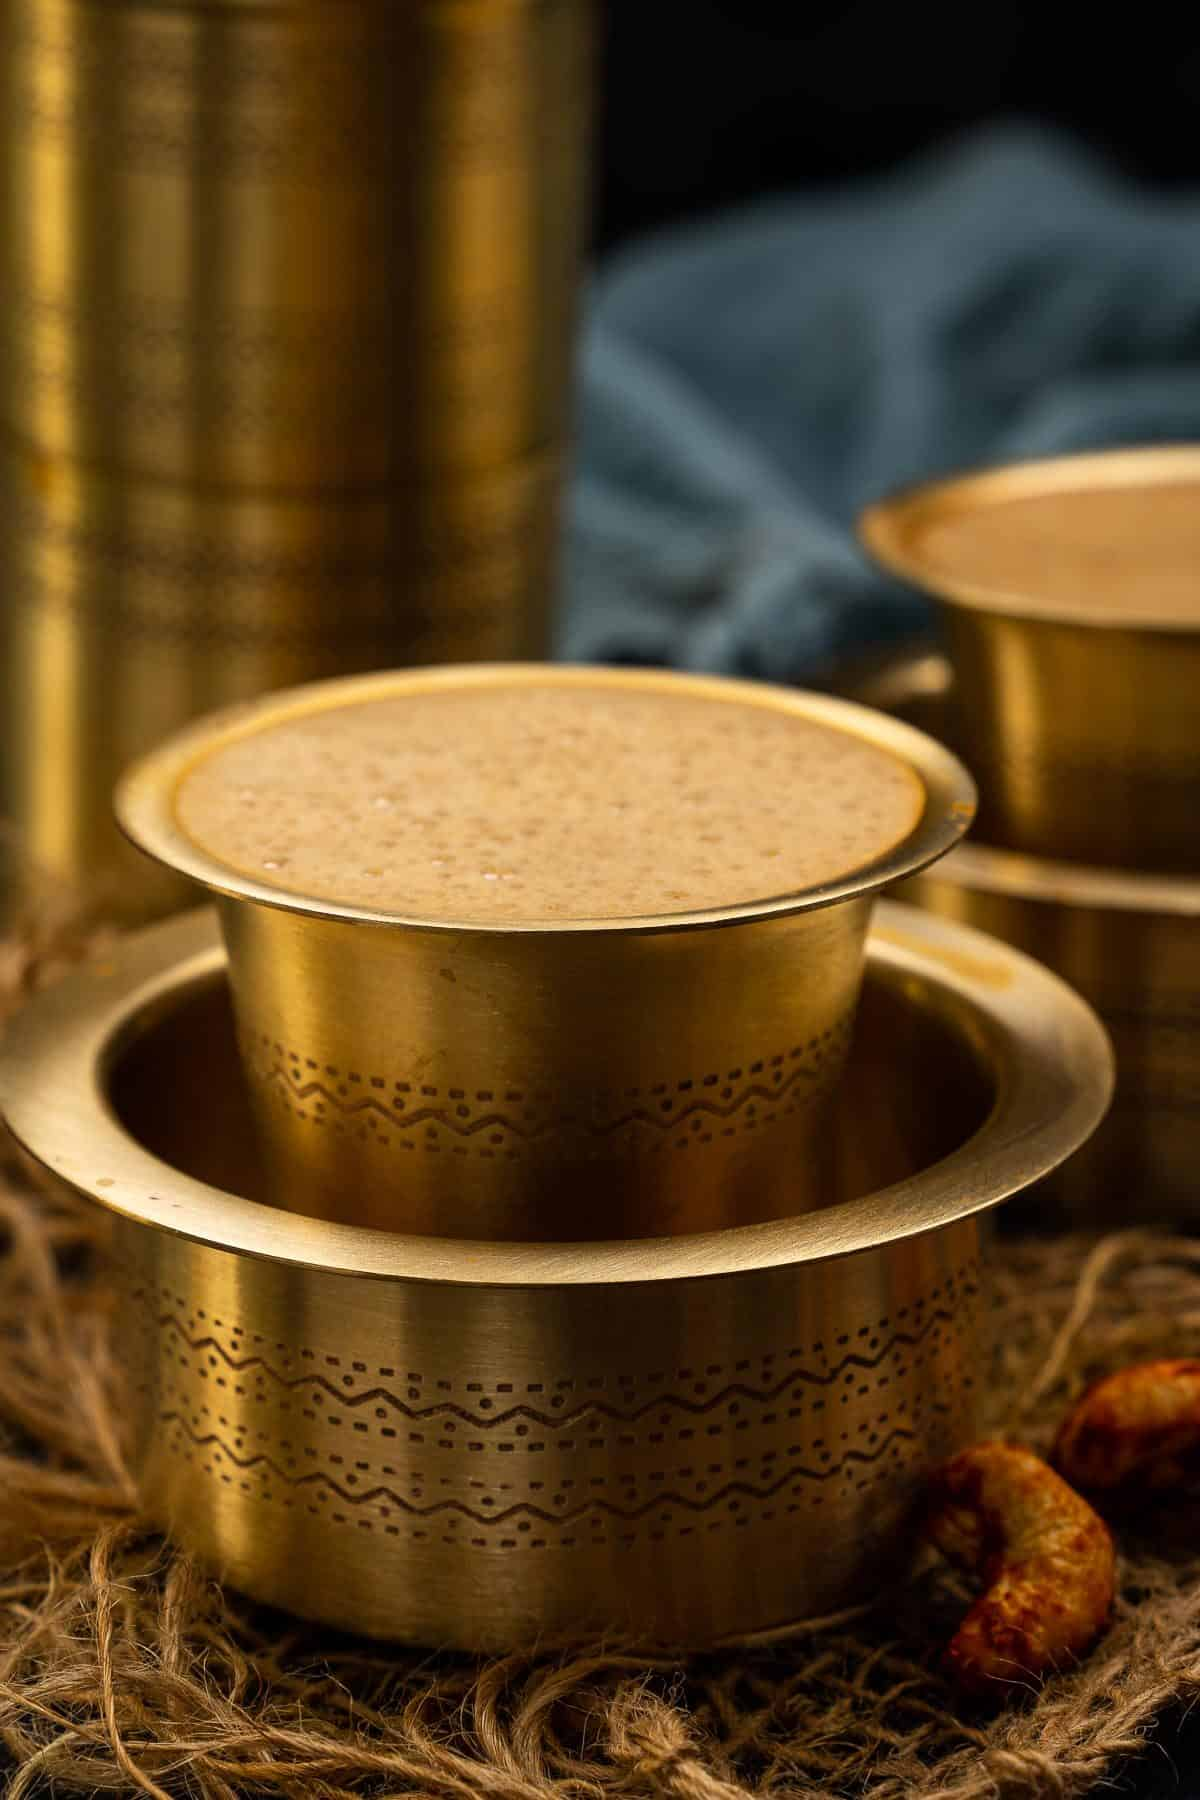 South Indian filter coffee served in a traditional tumbler.